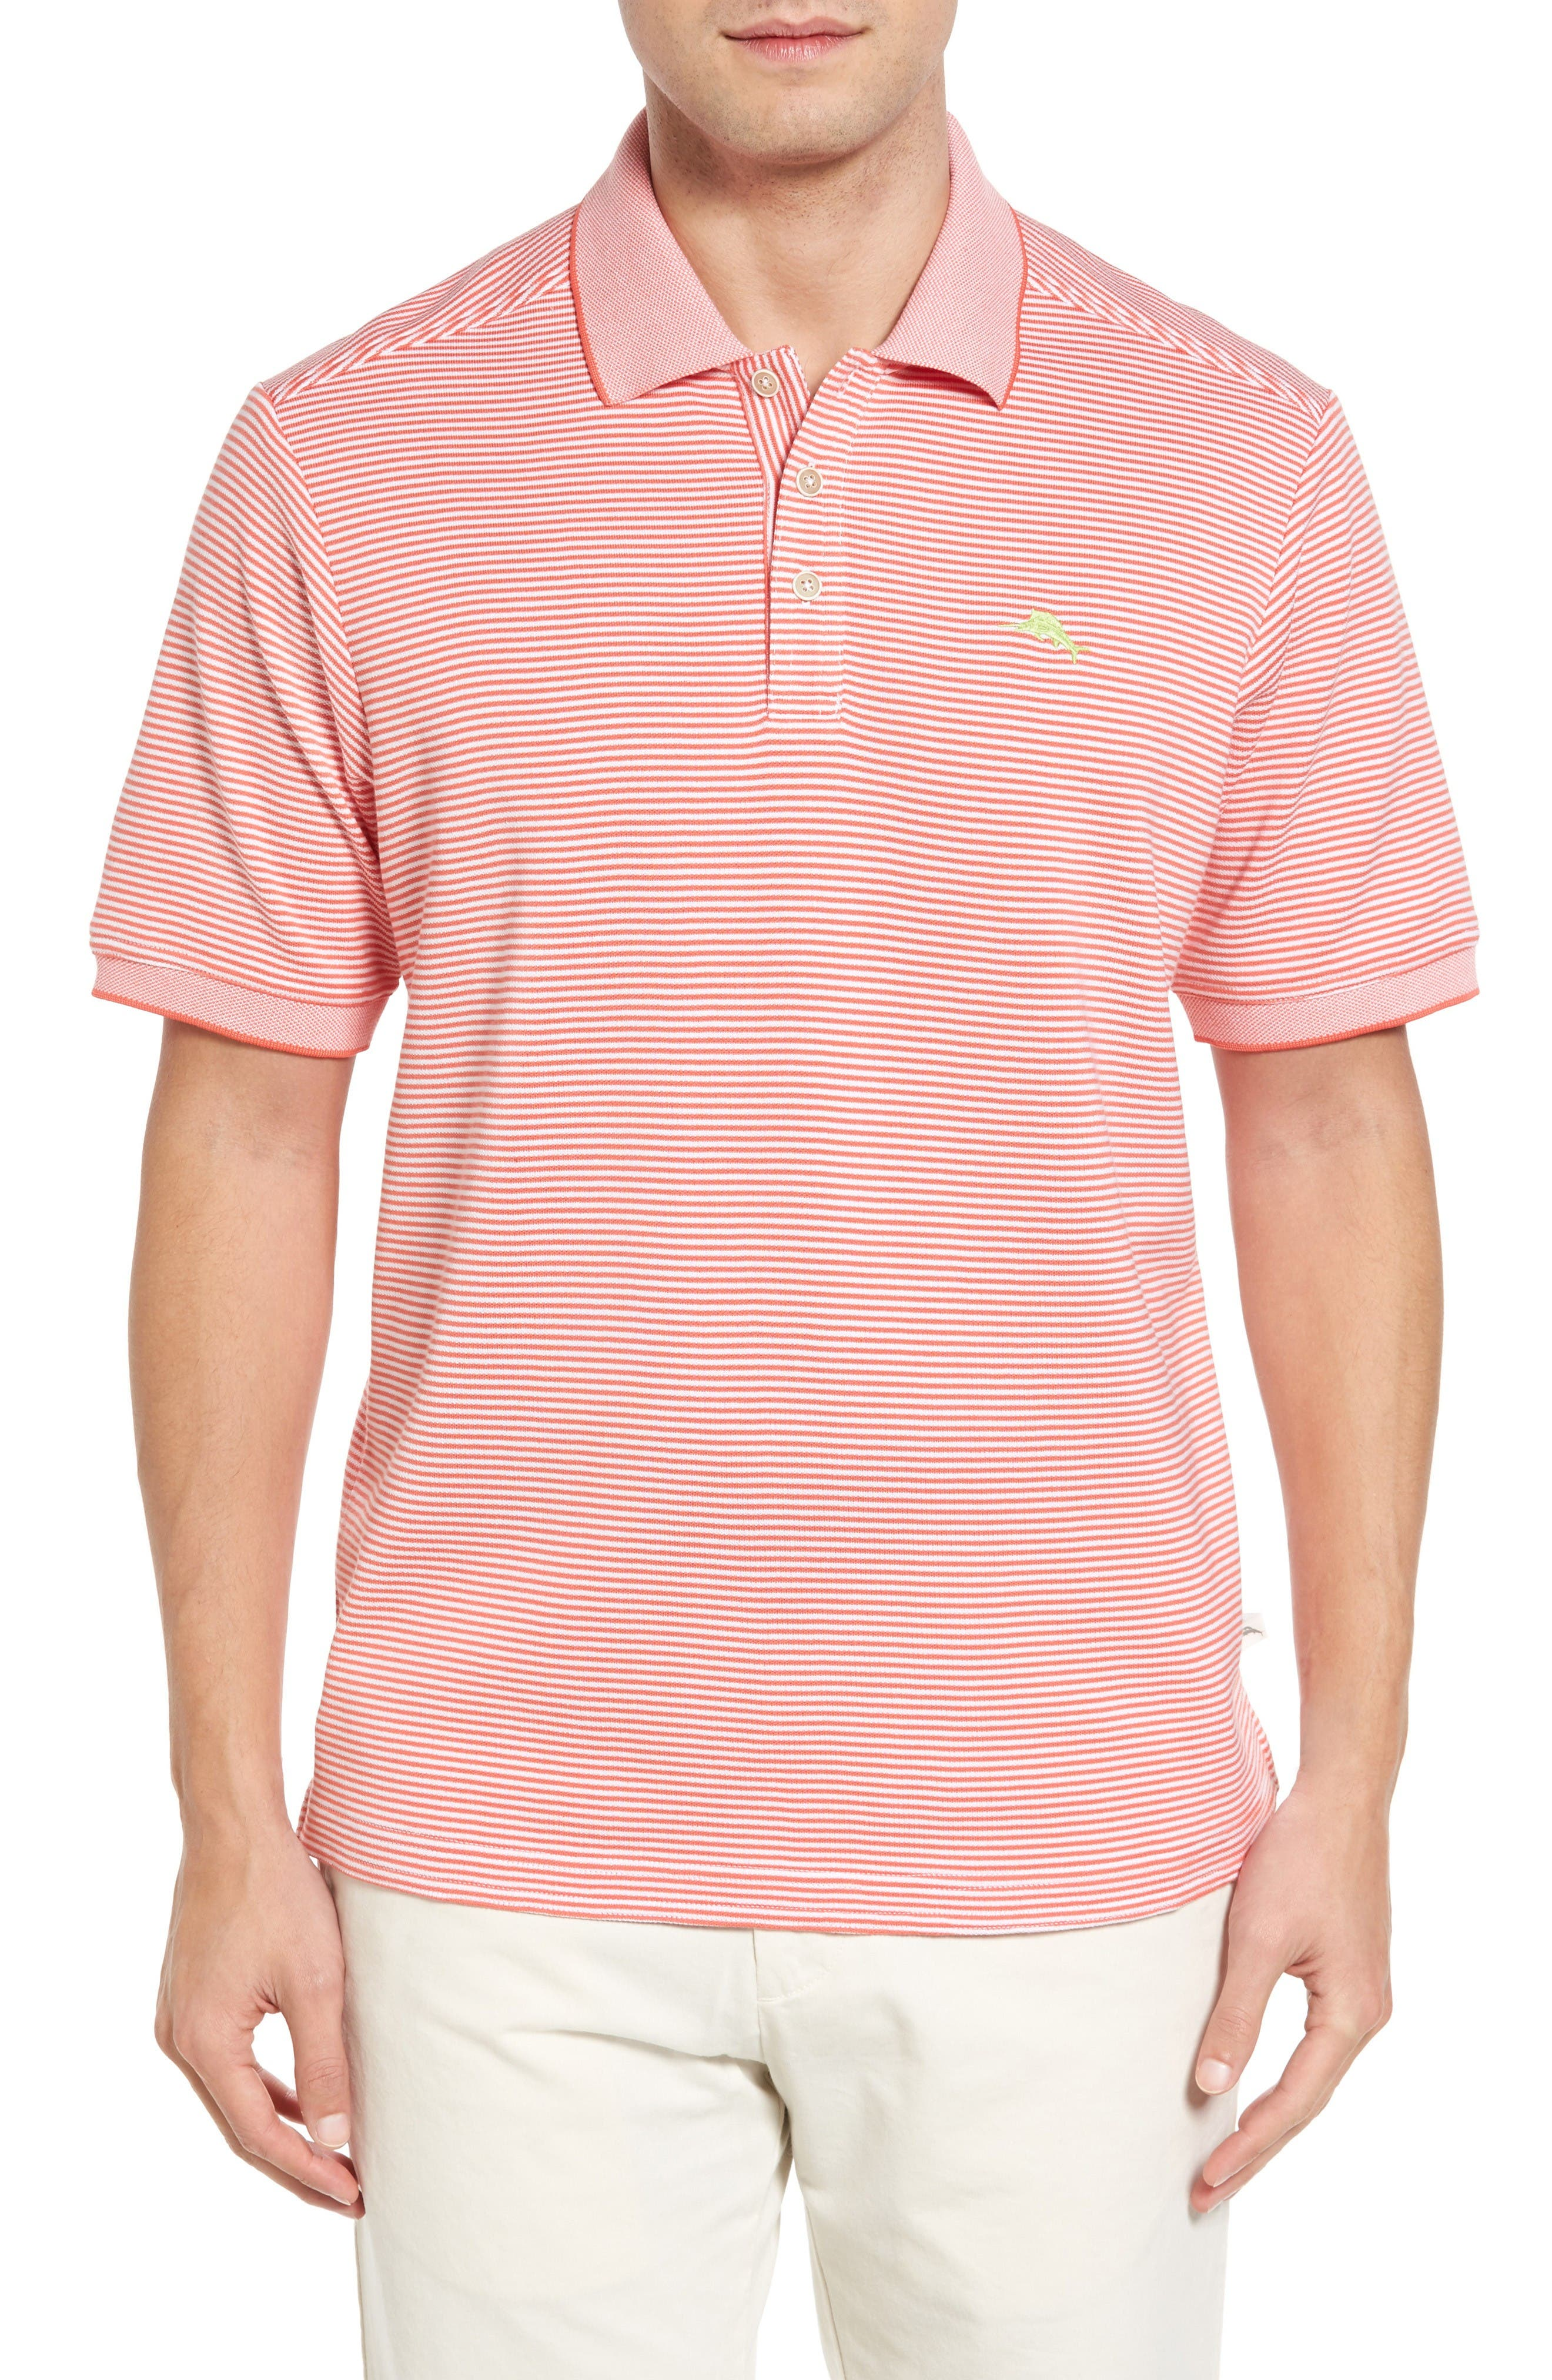 Main Image - Tommy Bahama Emfielder Stripe Pima Cotton Blend Polo